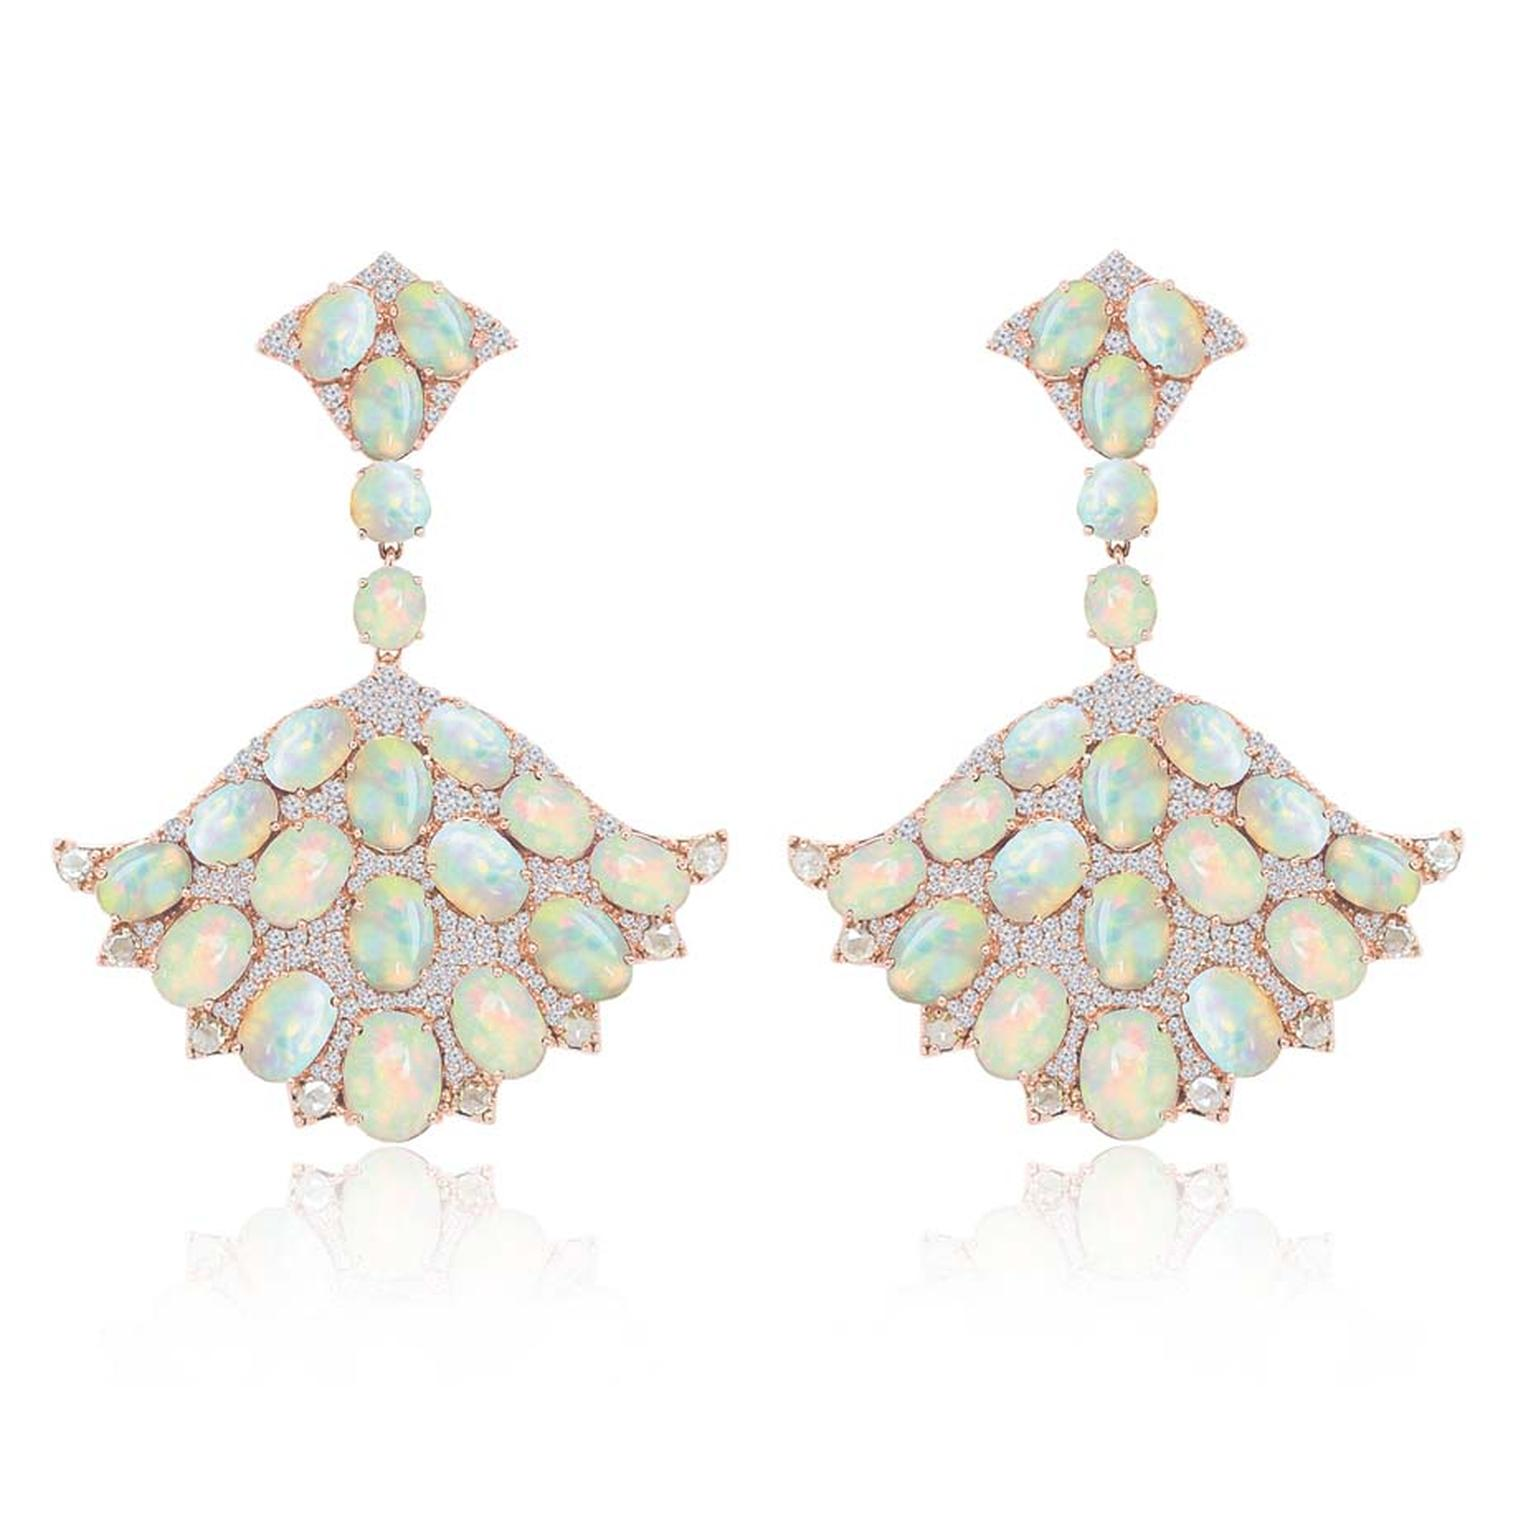 Sutra fan-style opal earrings with diamonds in rose gold.